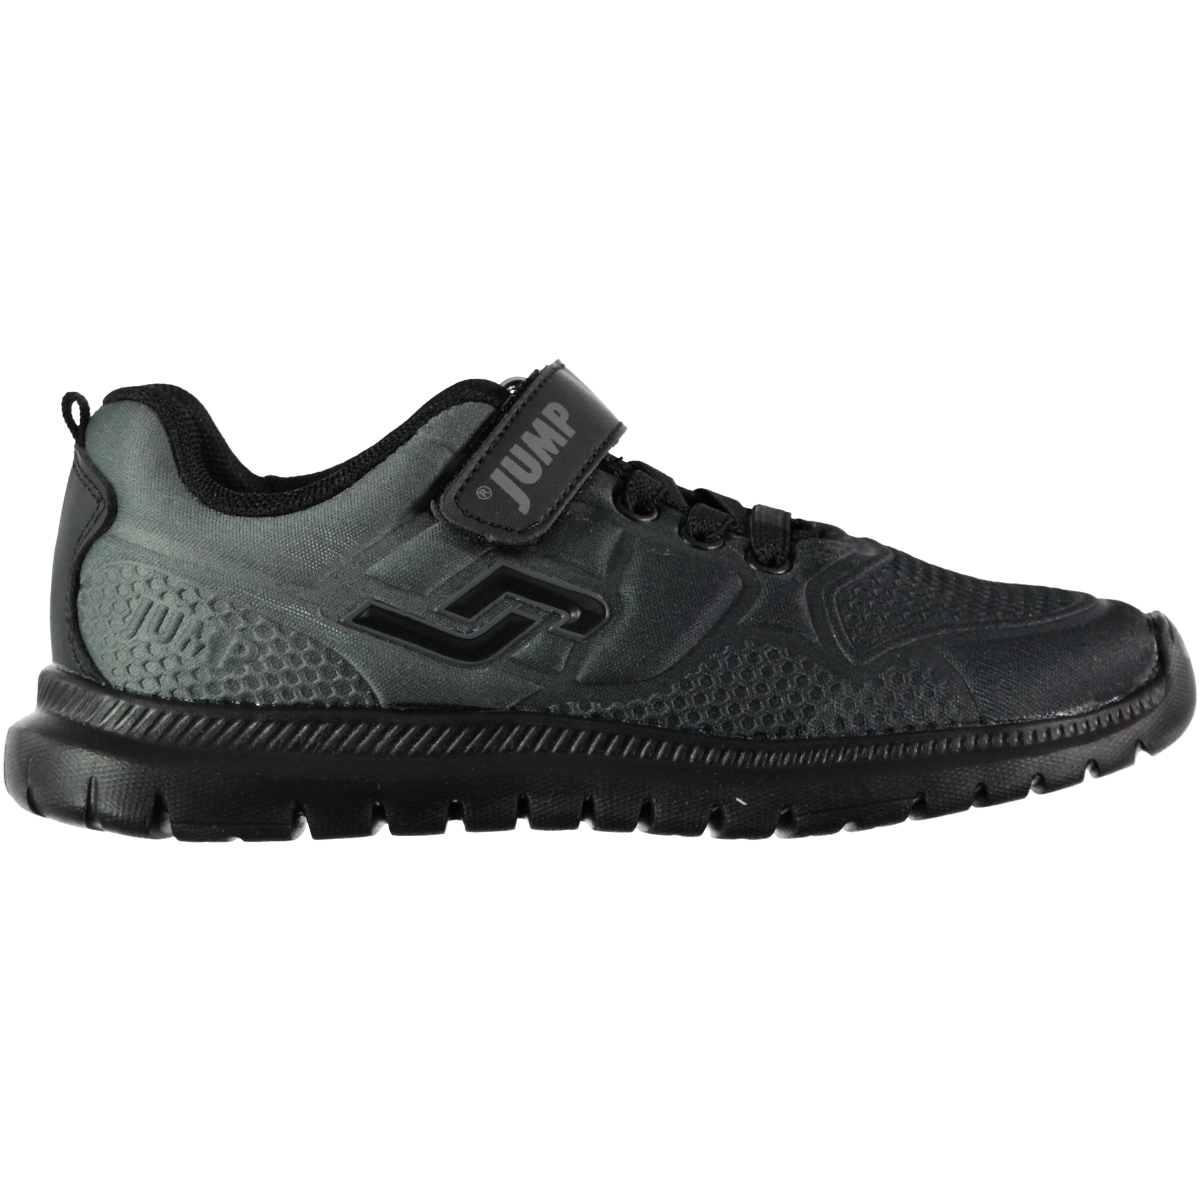 Jump Numbers 31-35 Children's Sports Shoes Black